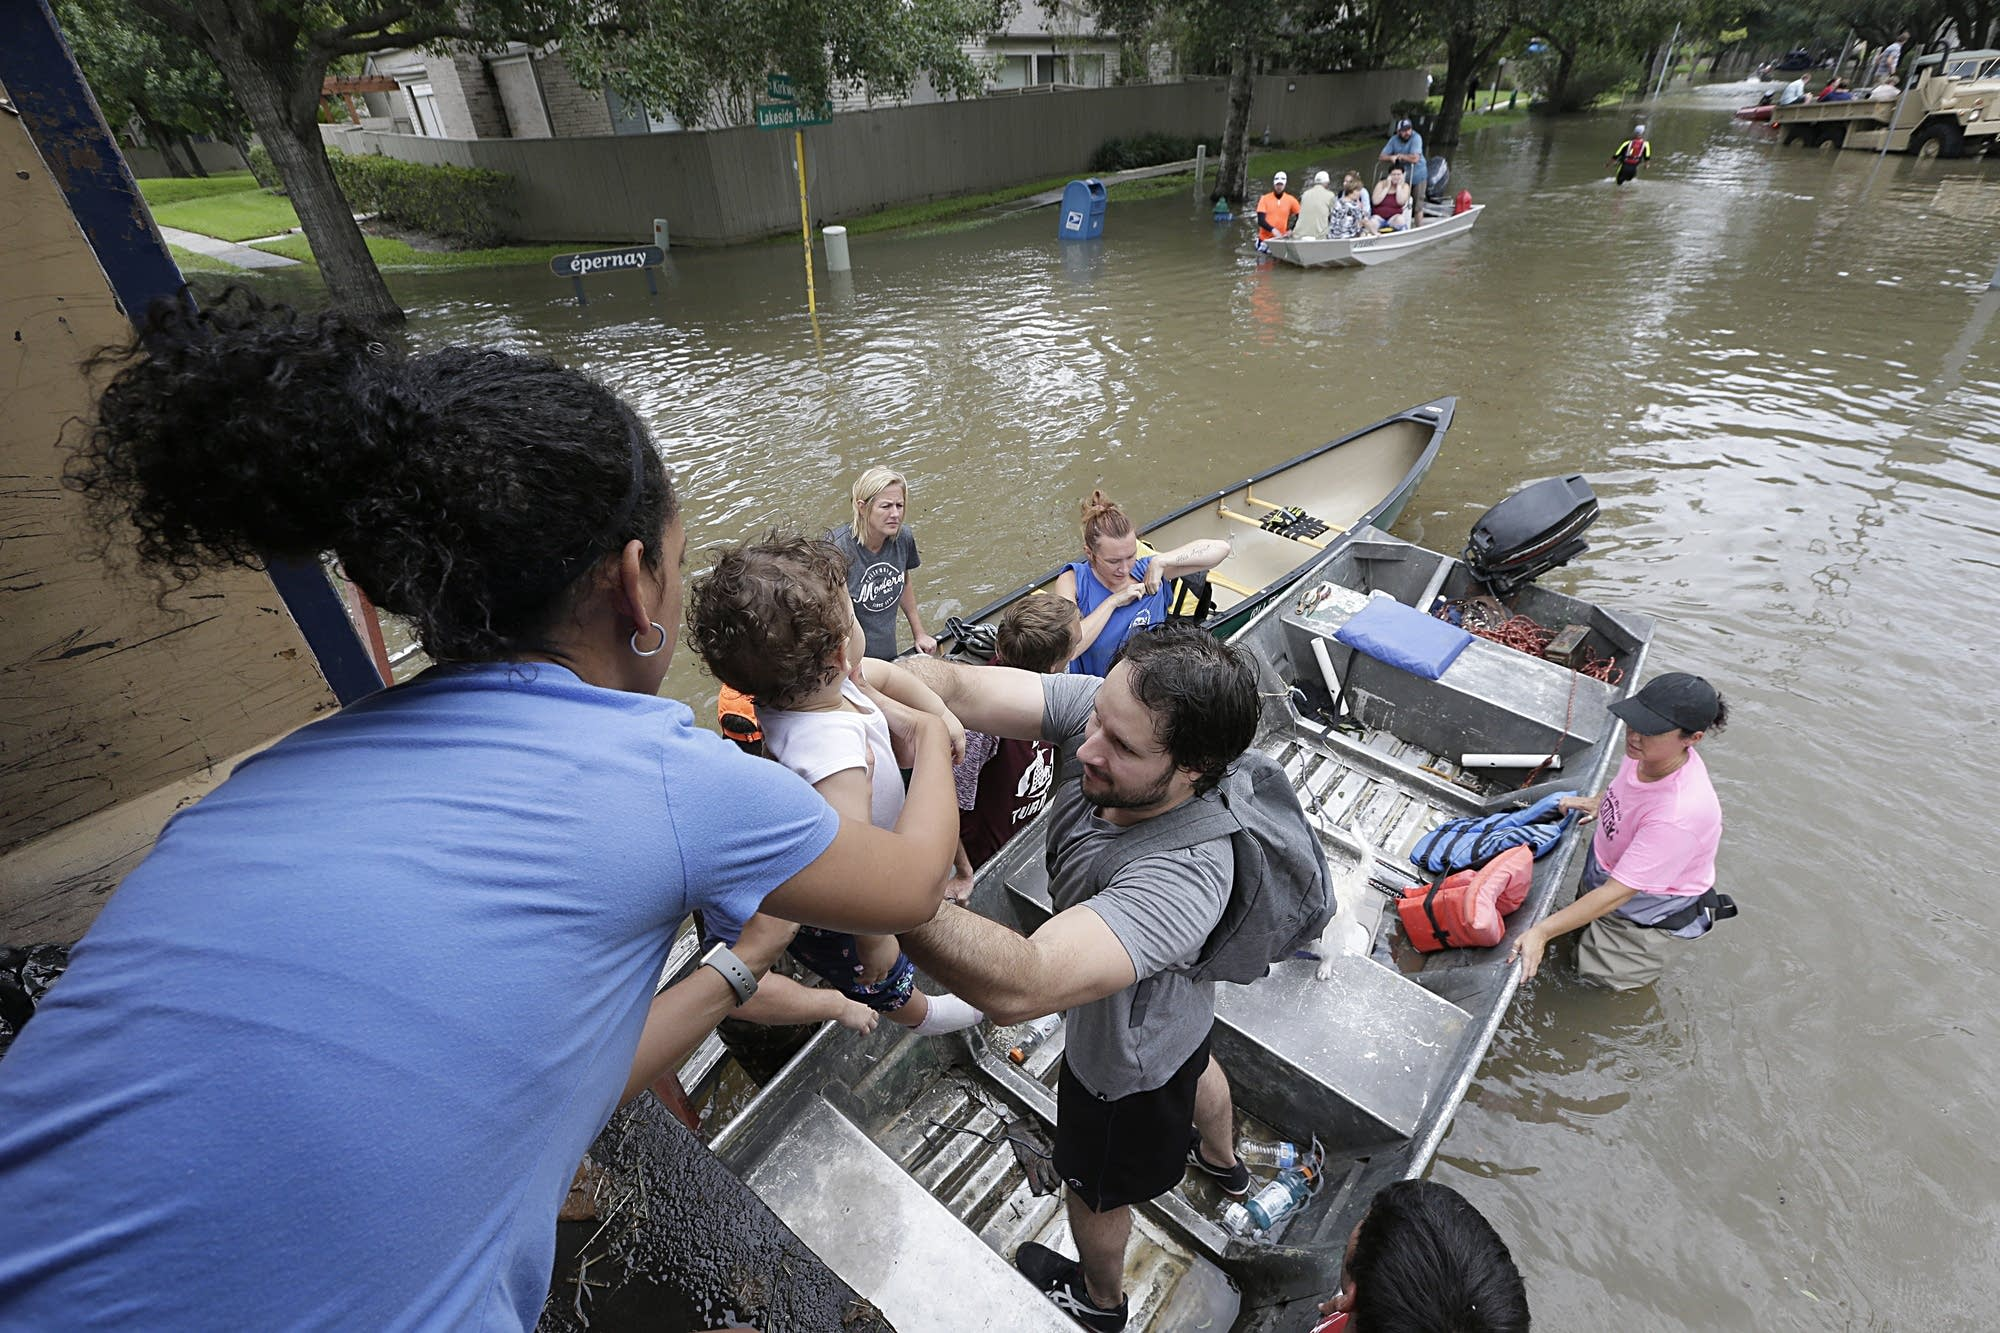 5c0a81e1c Rescuers start block-by-block search of flooded Houston